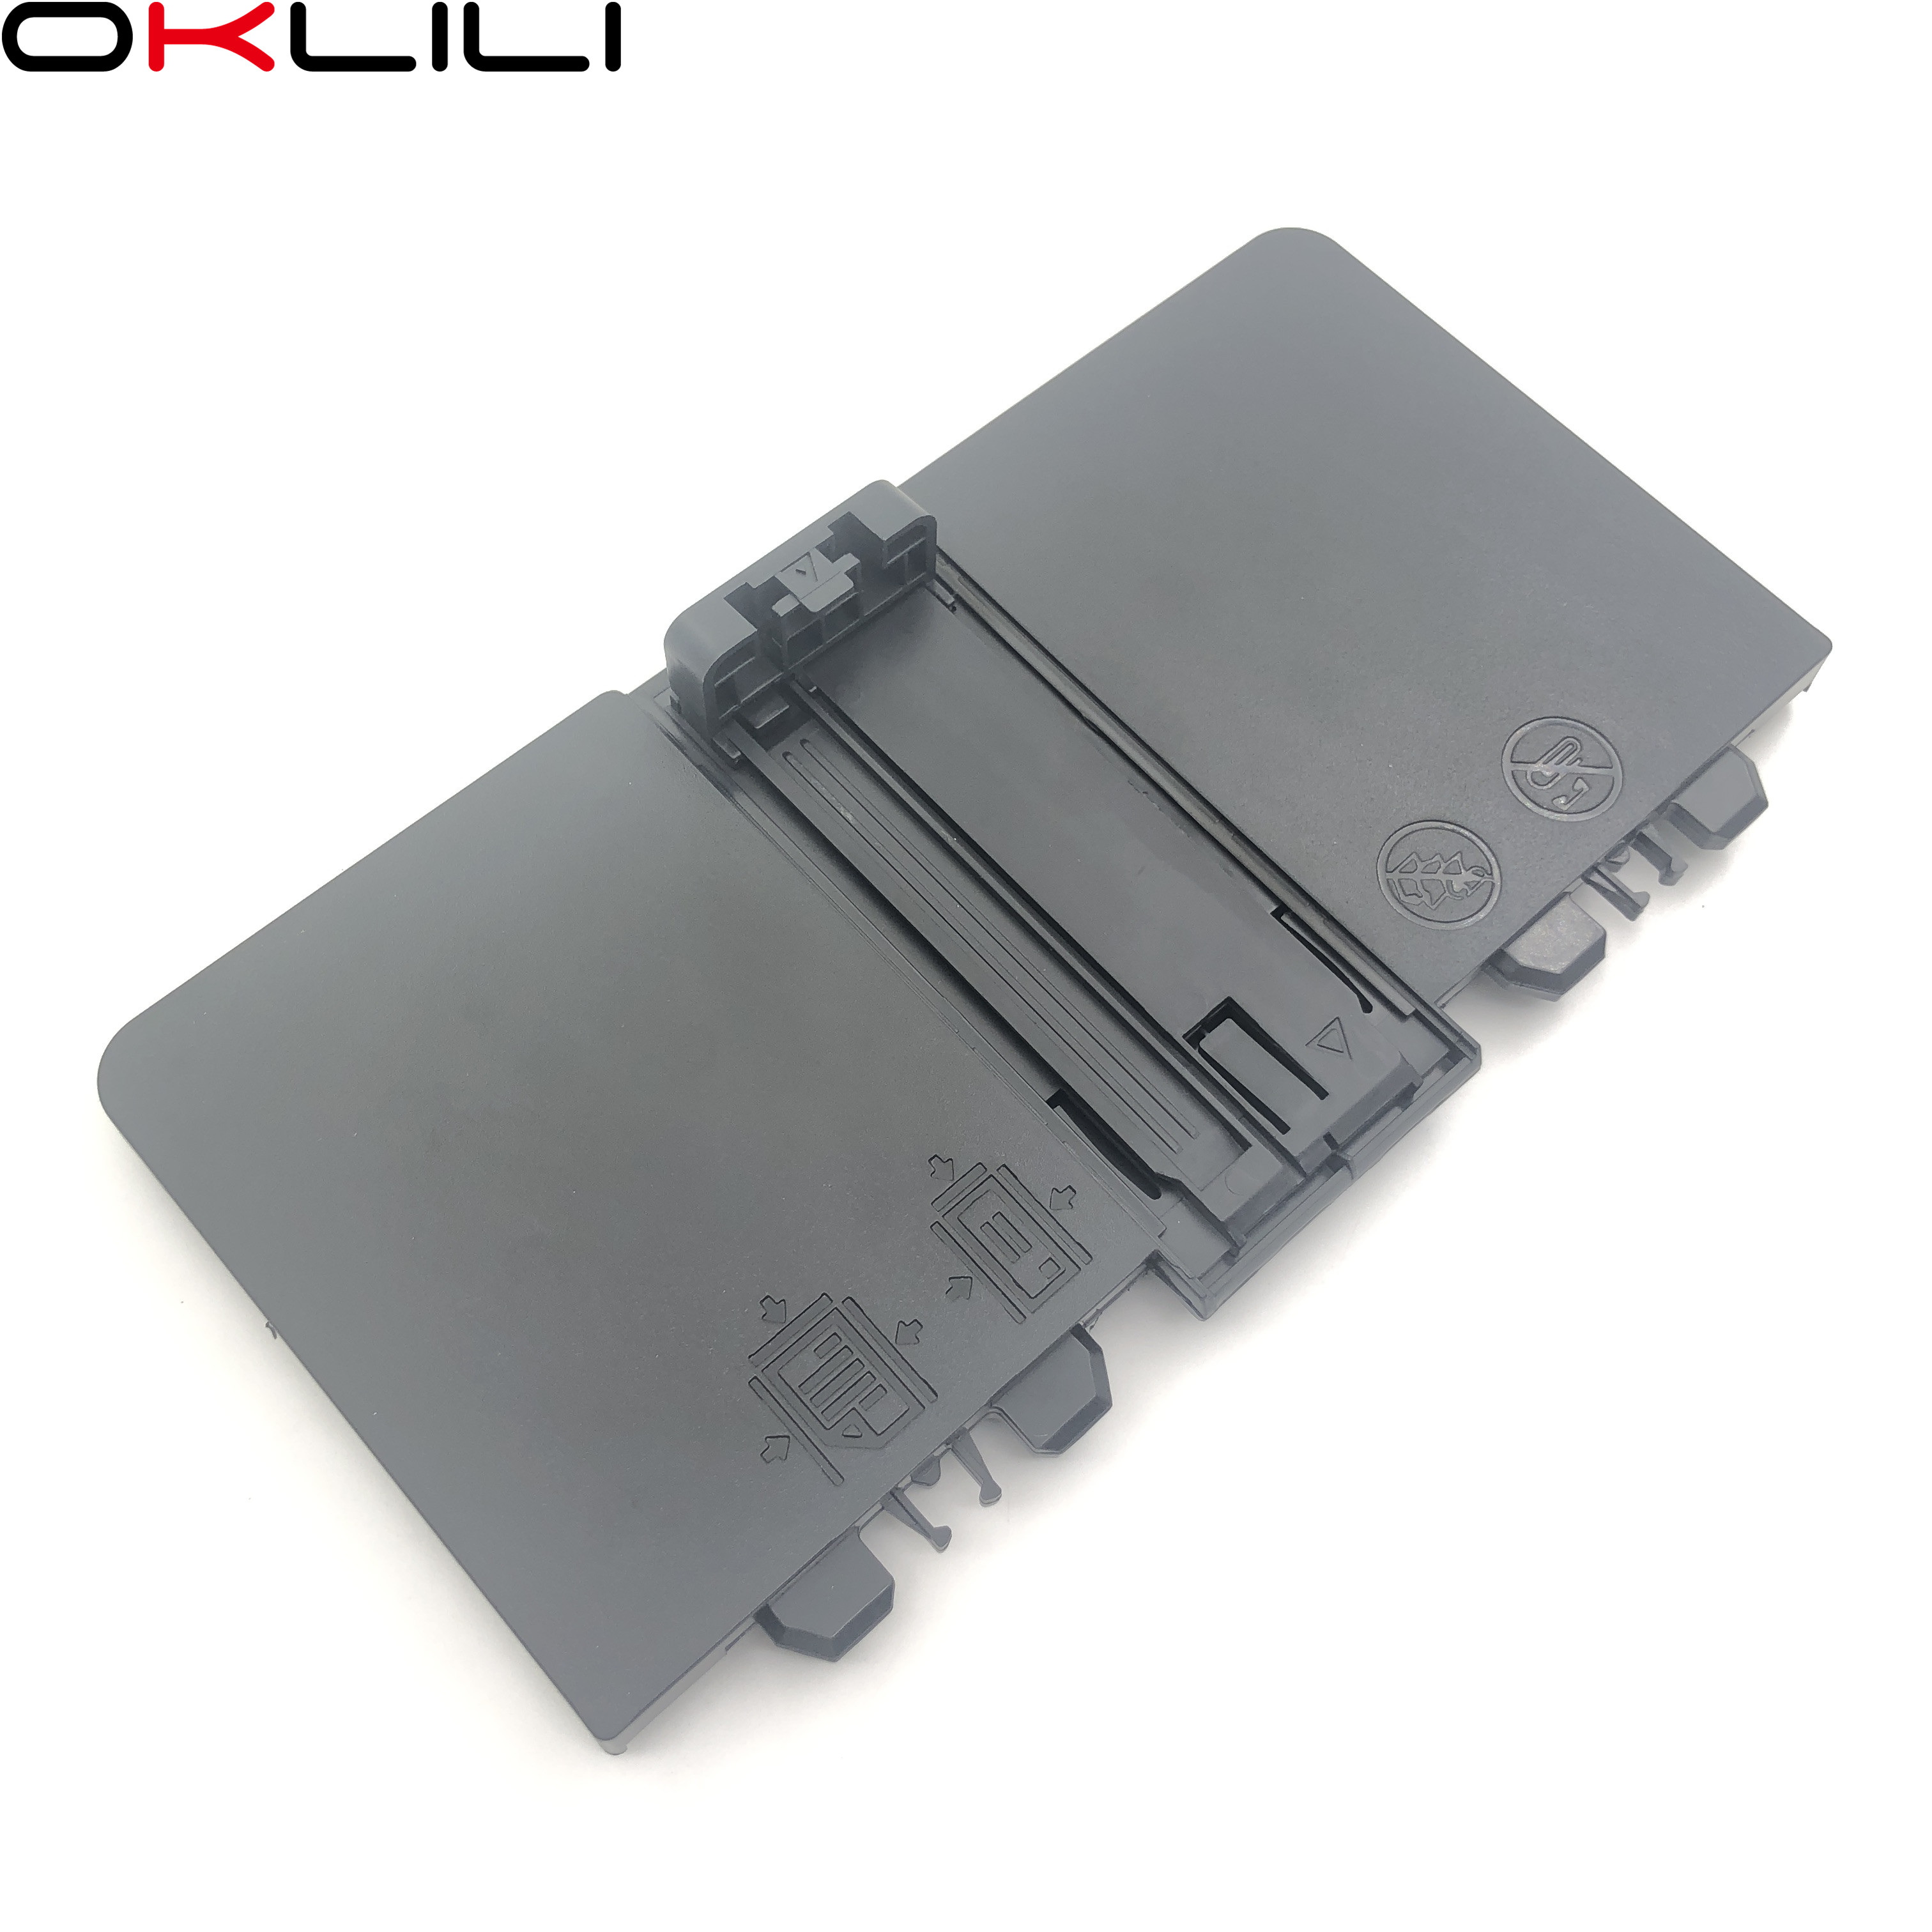 1PC X RC3-5016-000CN Paper Input Tray Assembly for <font><b>HP</b></font> M125a M125nw M125r M125rnw M126nw M127fn <font><b>M127fw</b></font> M128fp M125 M126 M127 M128 image